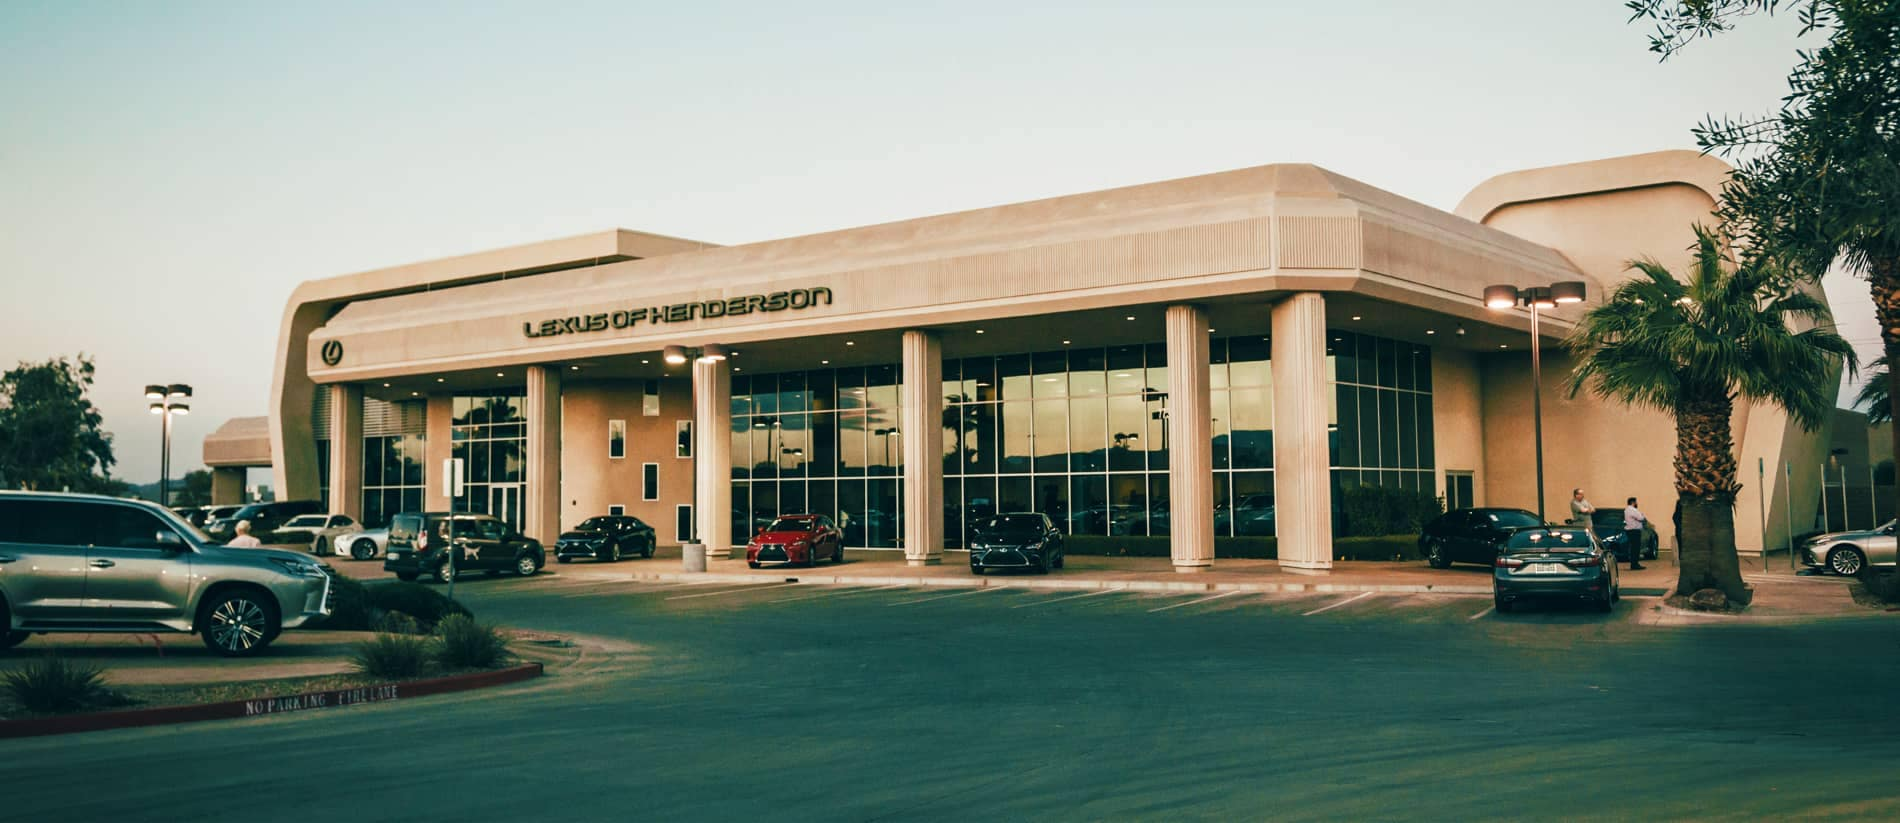 lexus of henderson dealership front